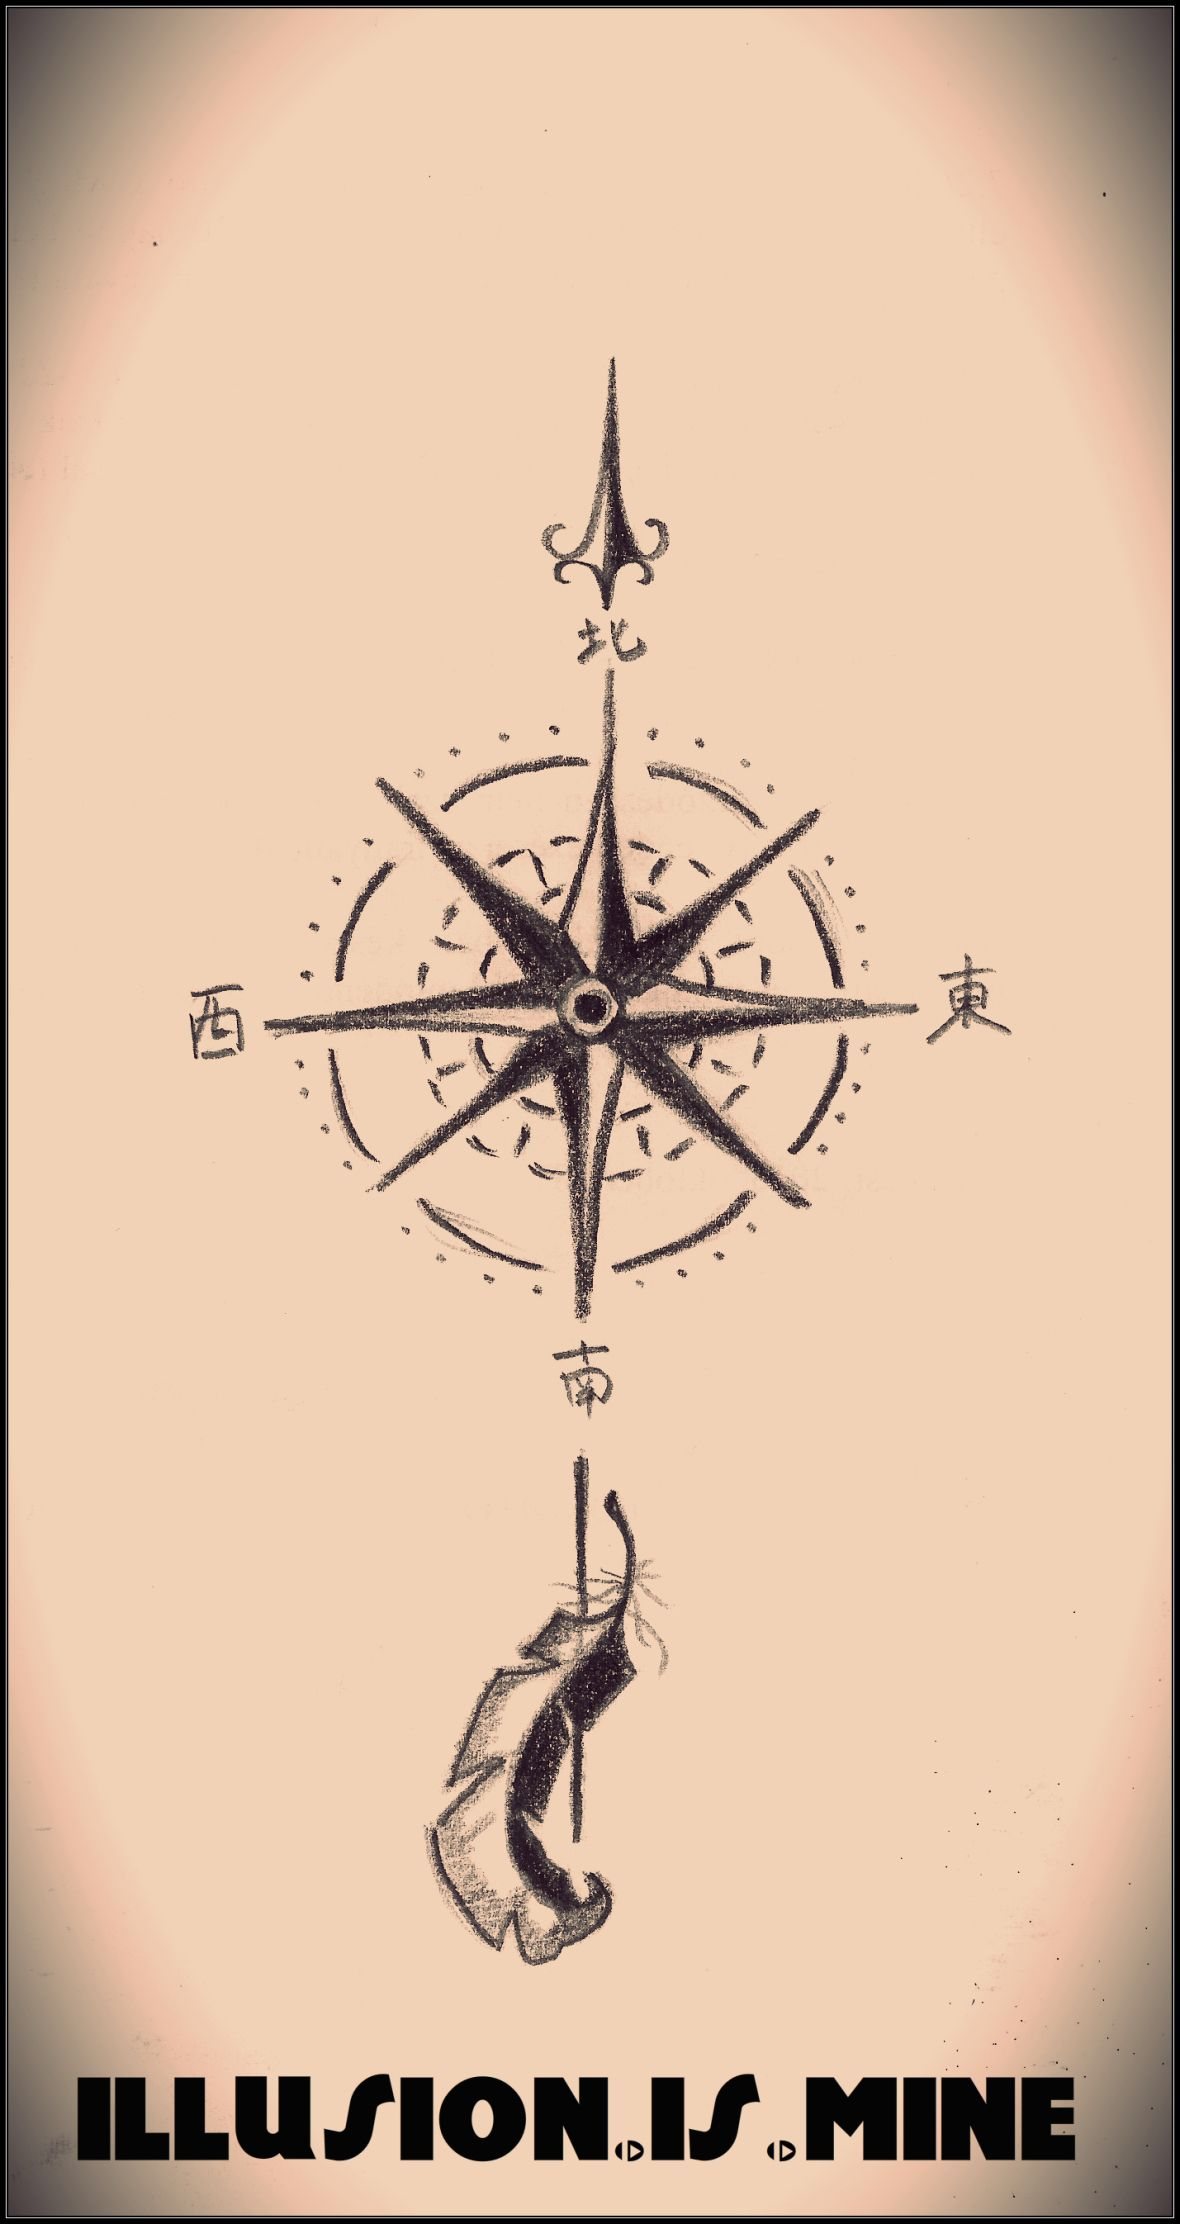 Compass rose tattoo design | Compass rose tattoo, Compass rose and ...